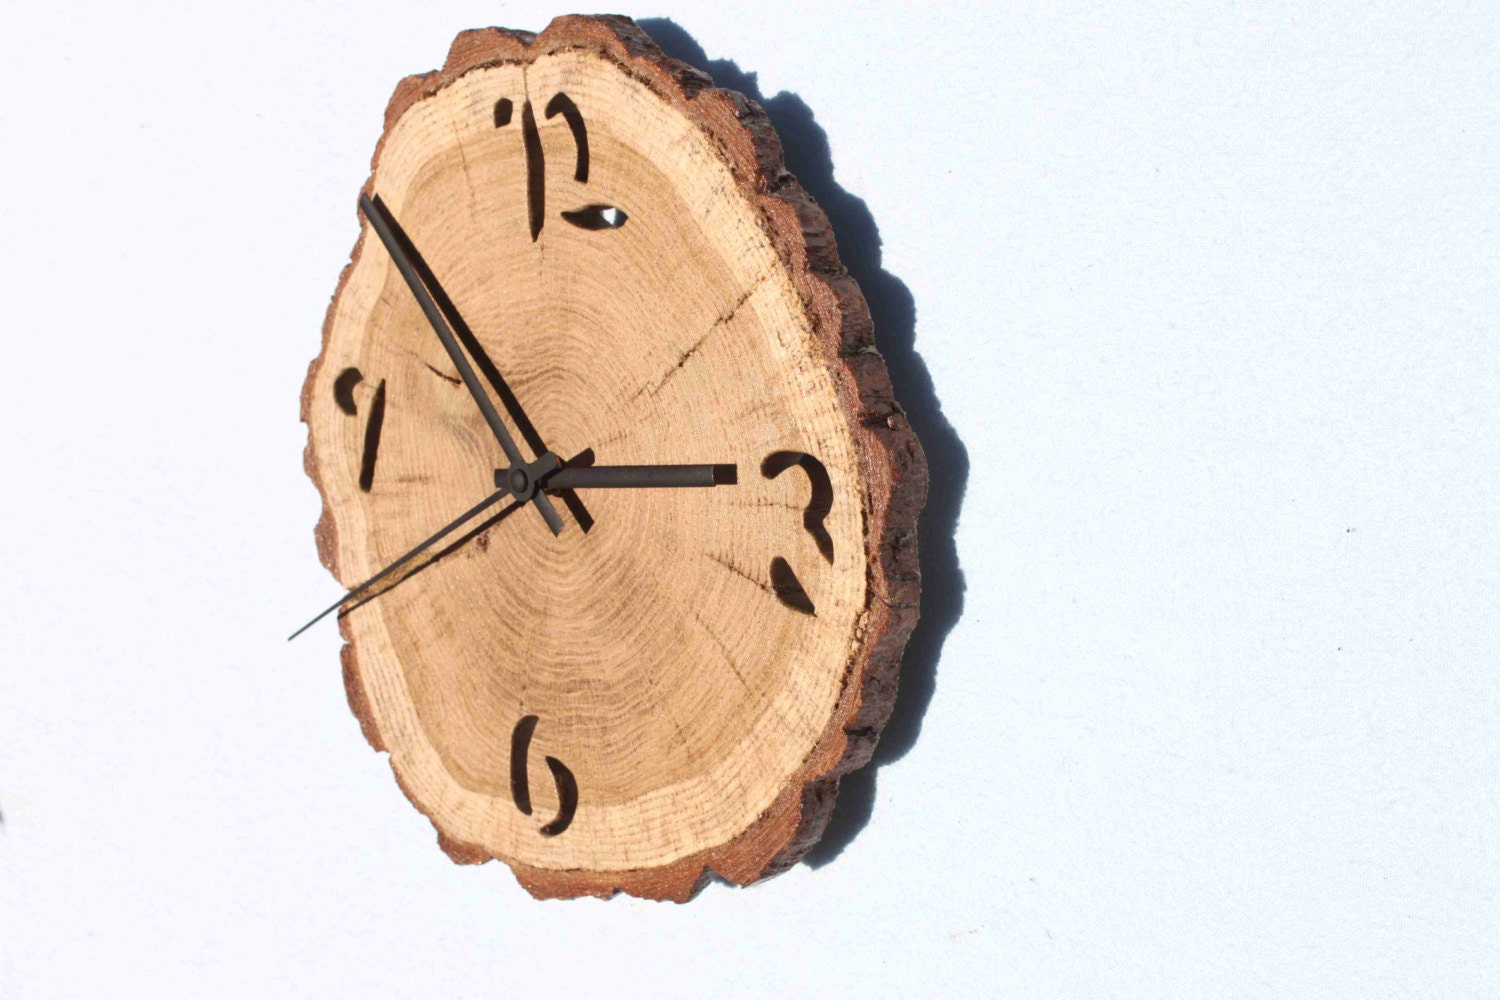 Oak clock unique wall clocks wall clock wood wooden slices zoom amipublicfo Image collections